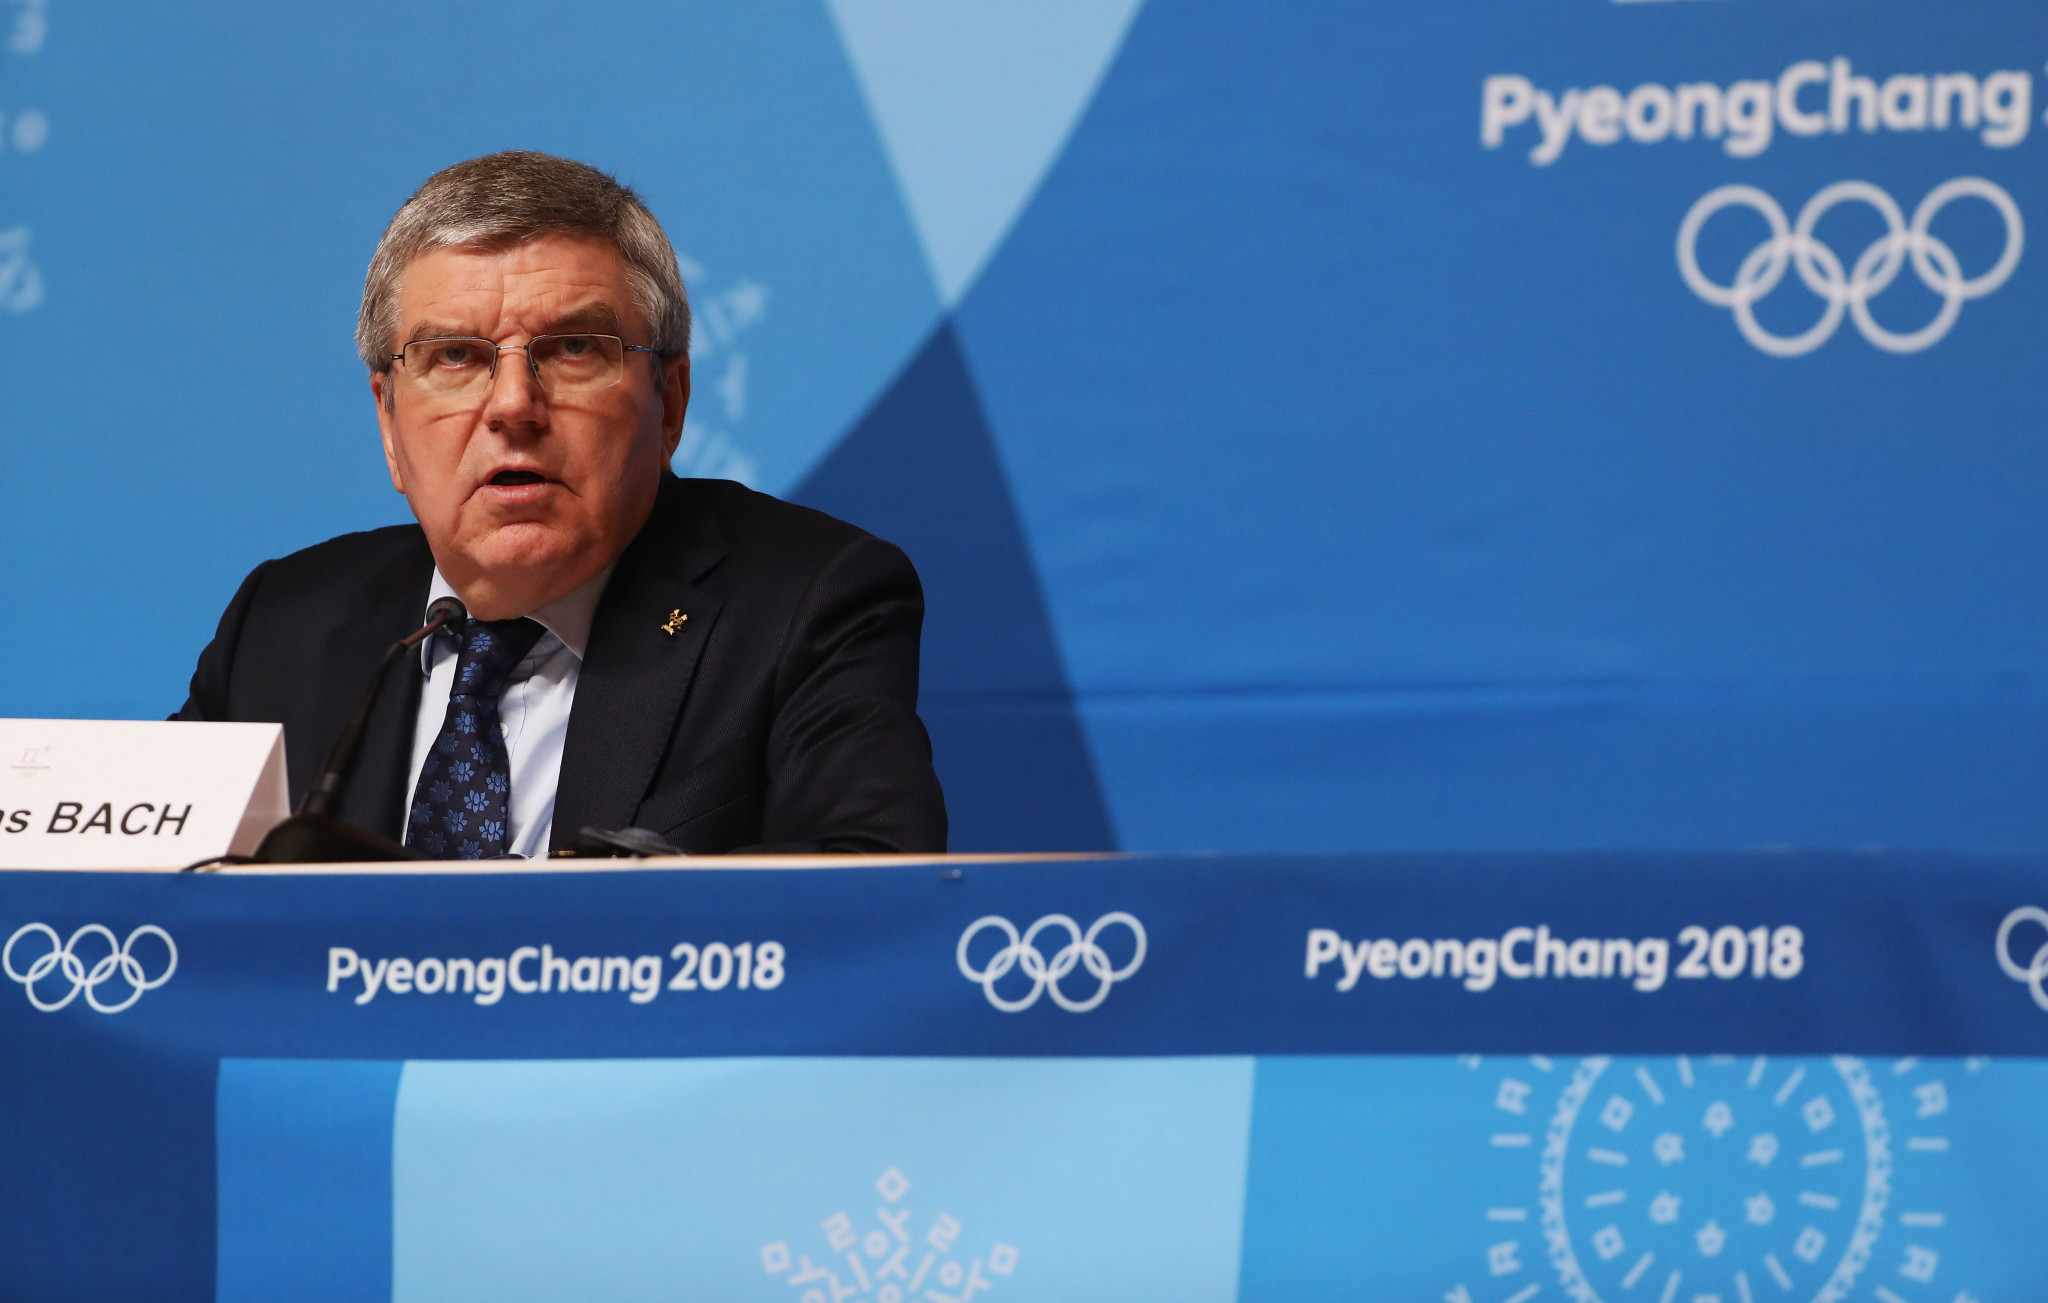 Thomas Bach criticised the running of CAS before the Pyeongchang 2018 Winter Olympics ©Getty Images